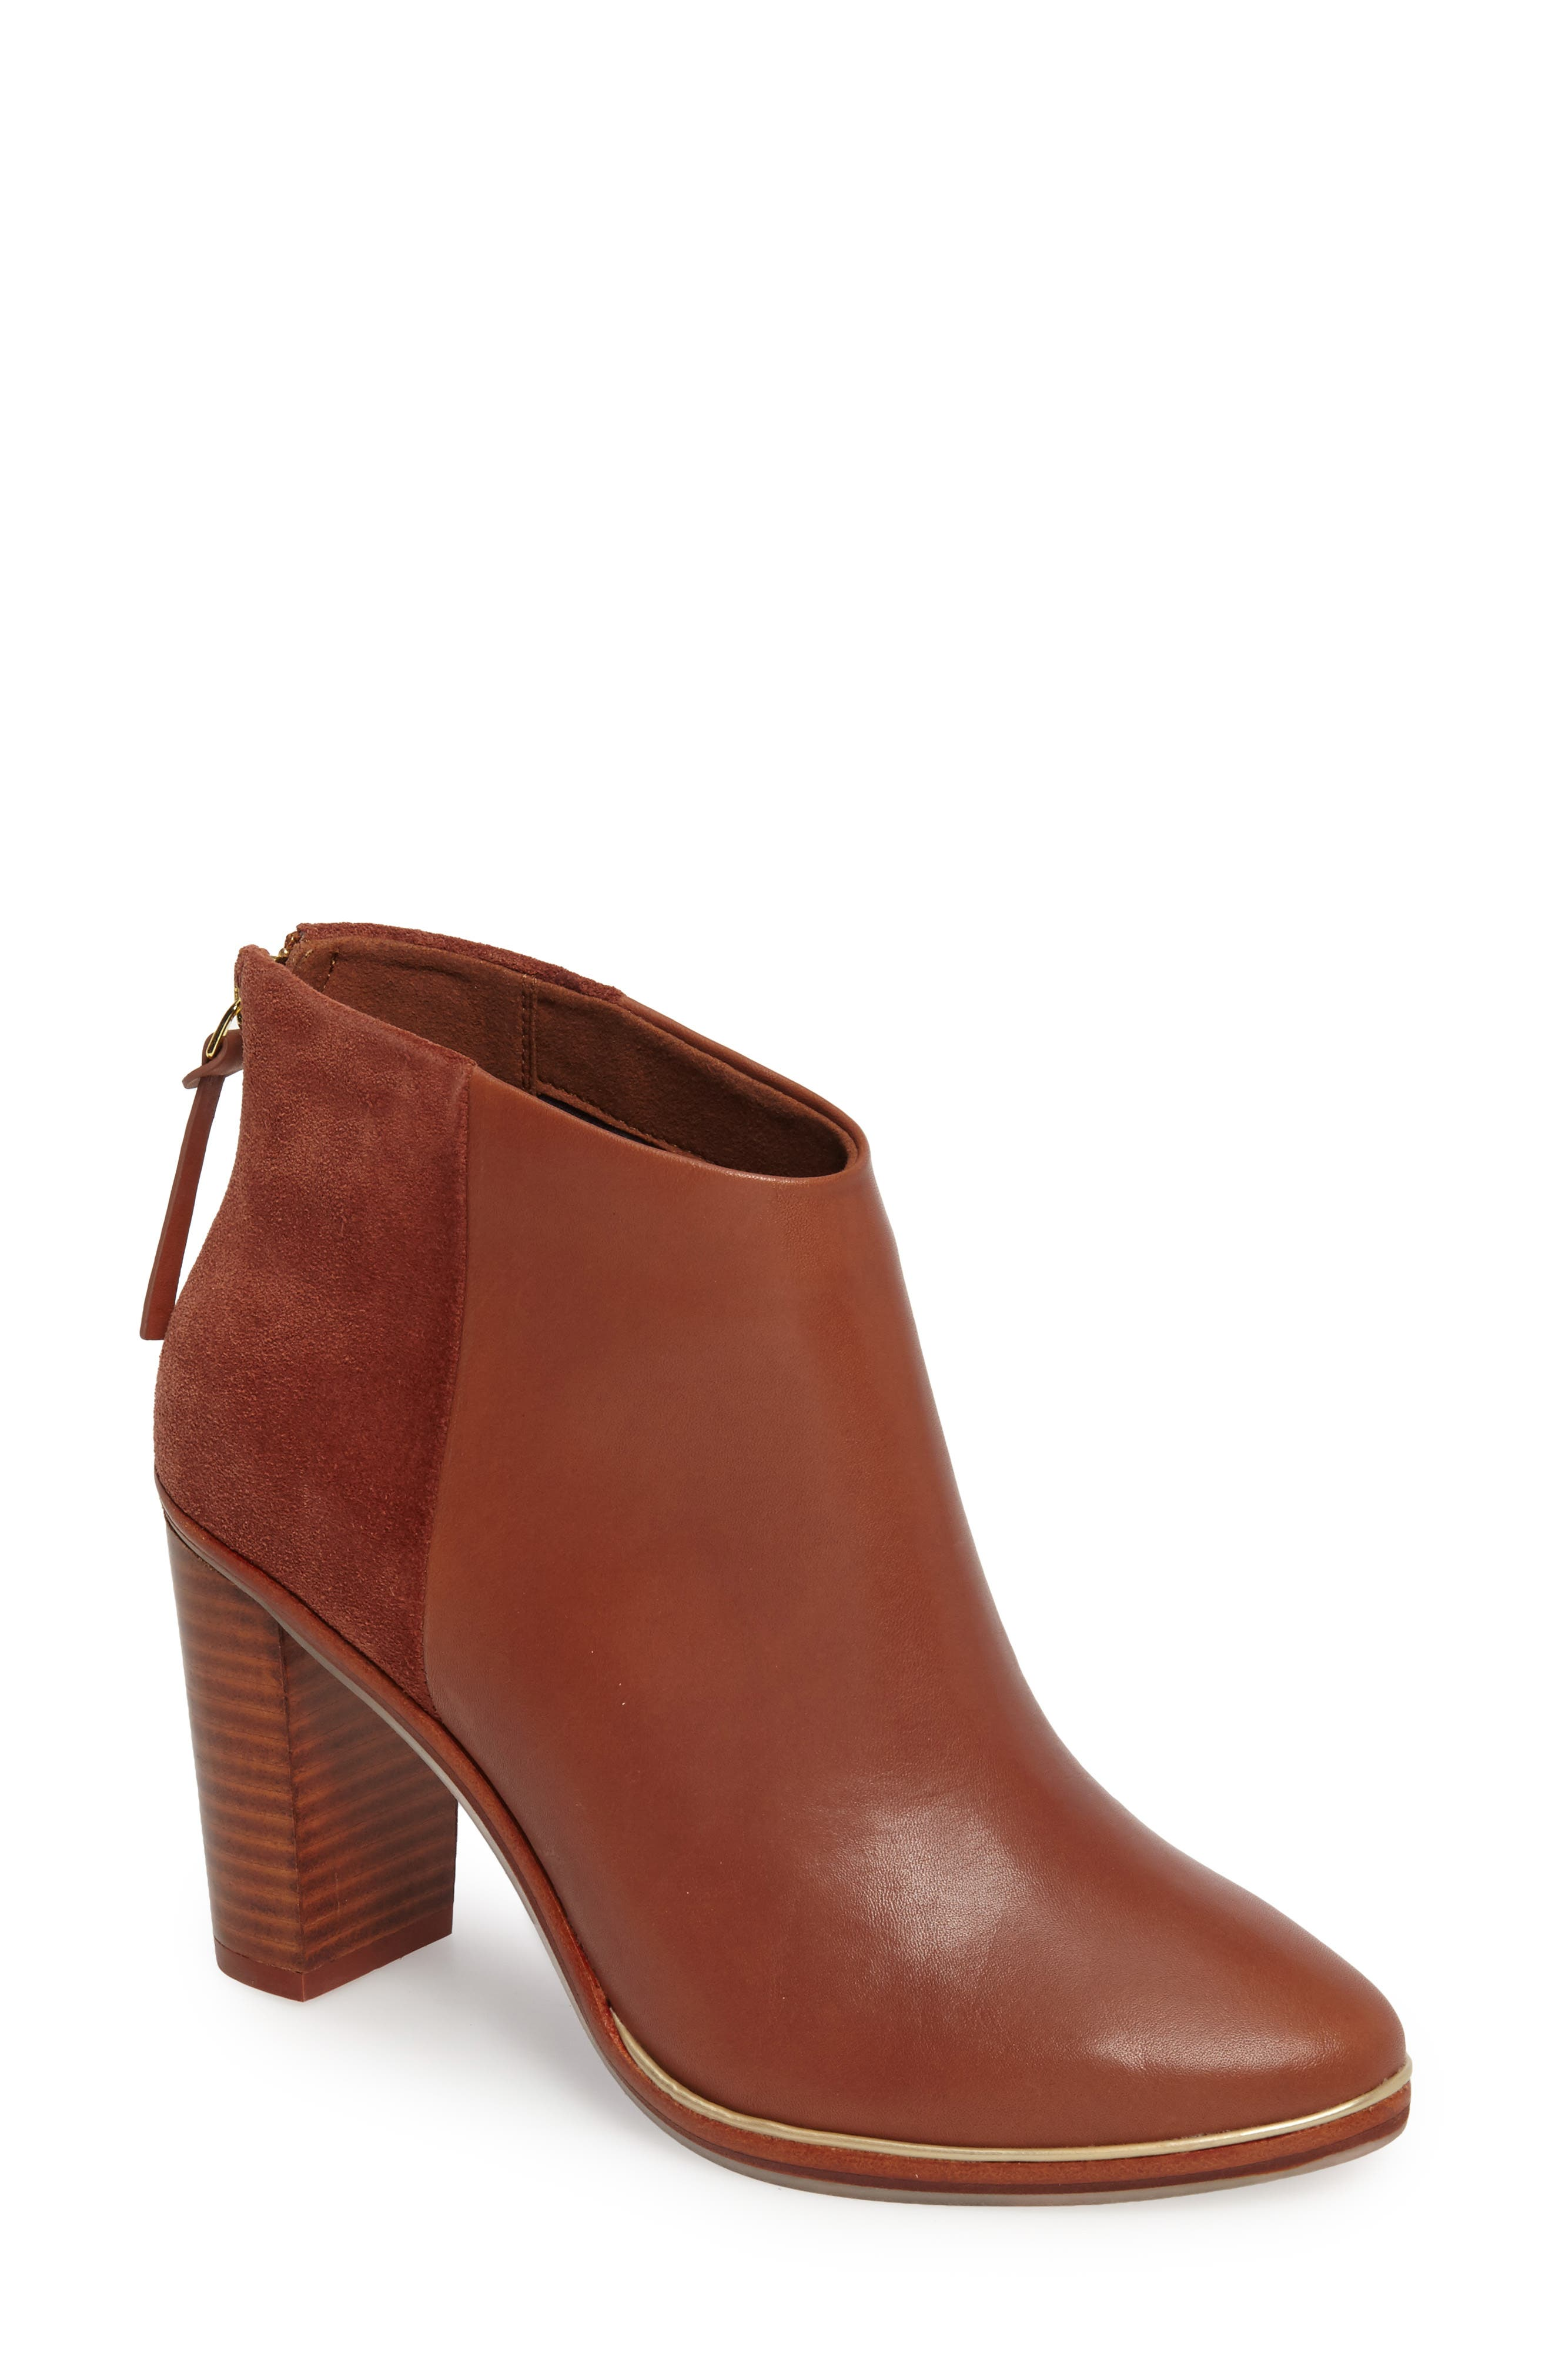 Alternate Image 1 Selected - Ted Baker London Azaila Bootie (Women)